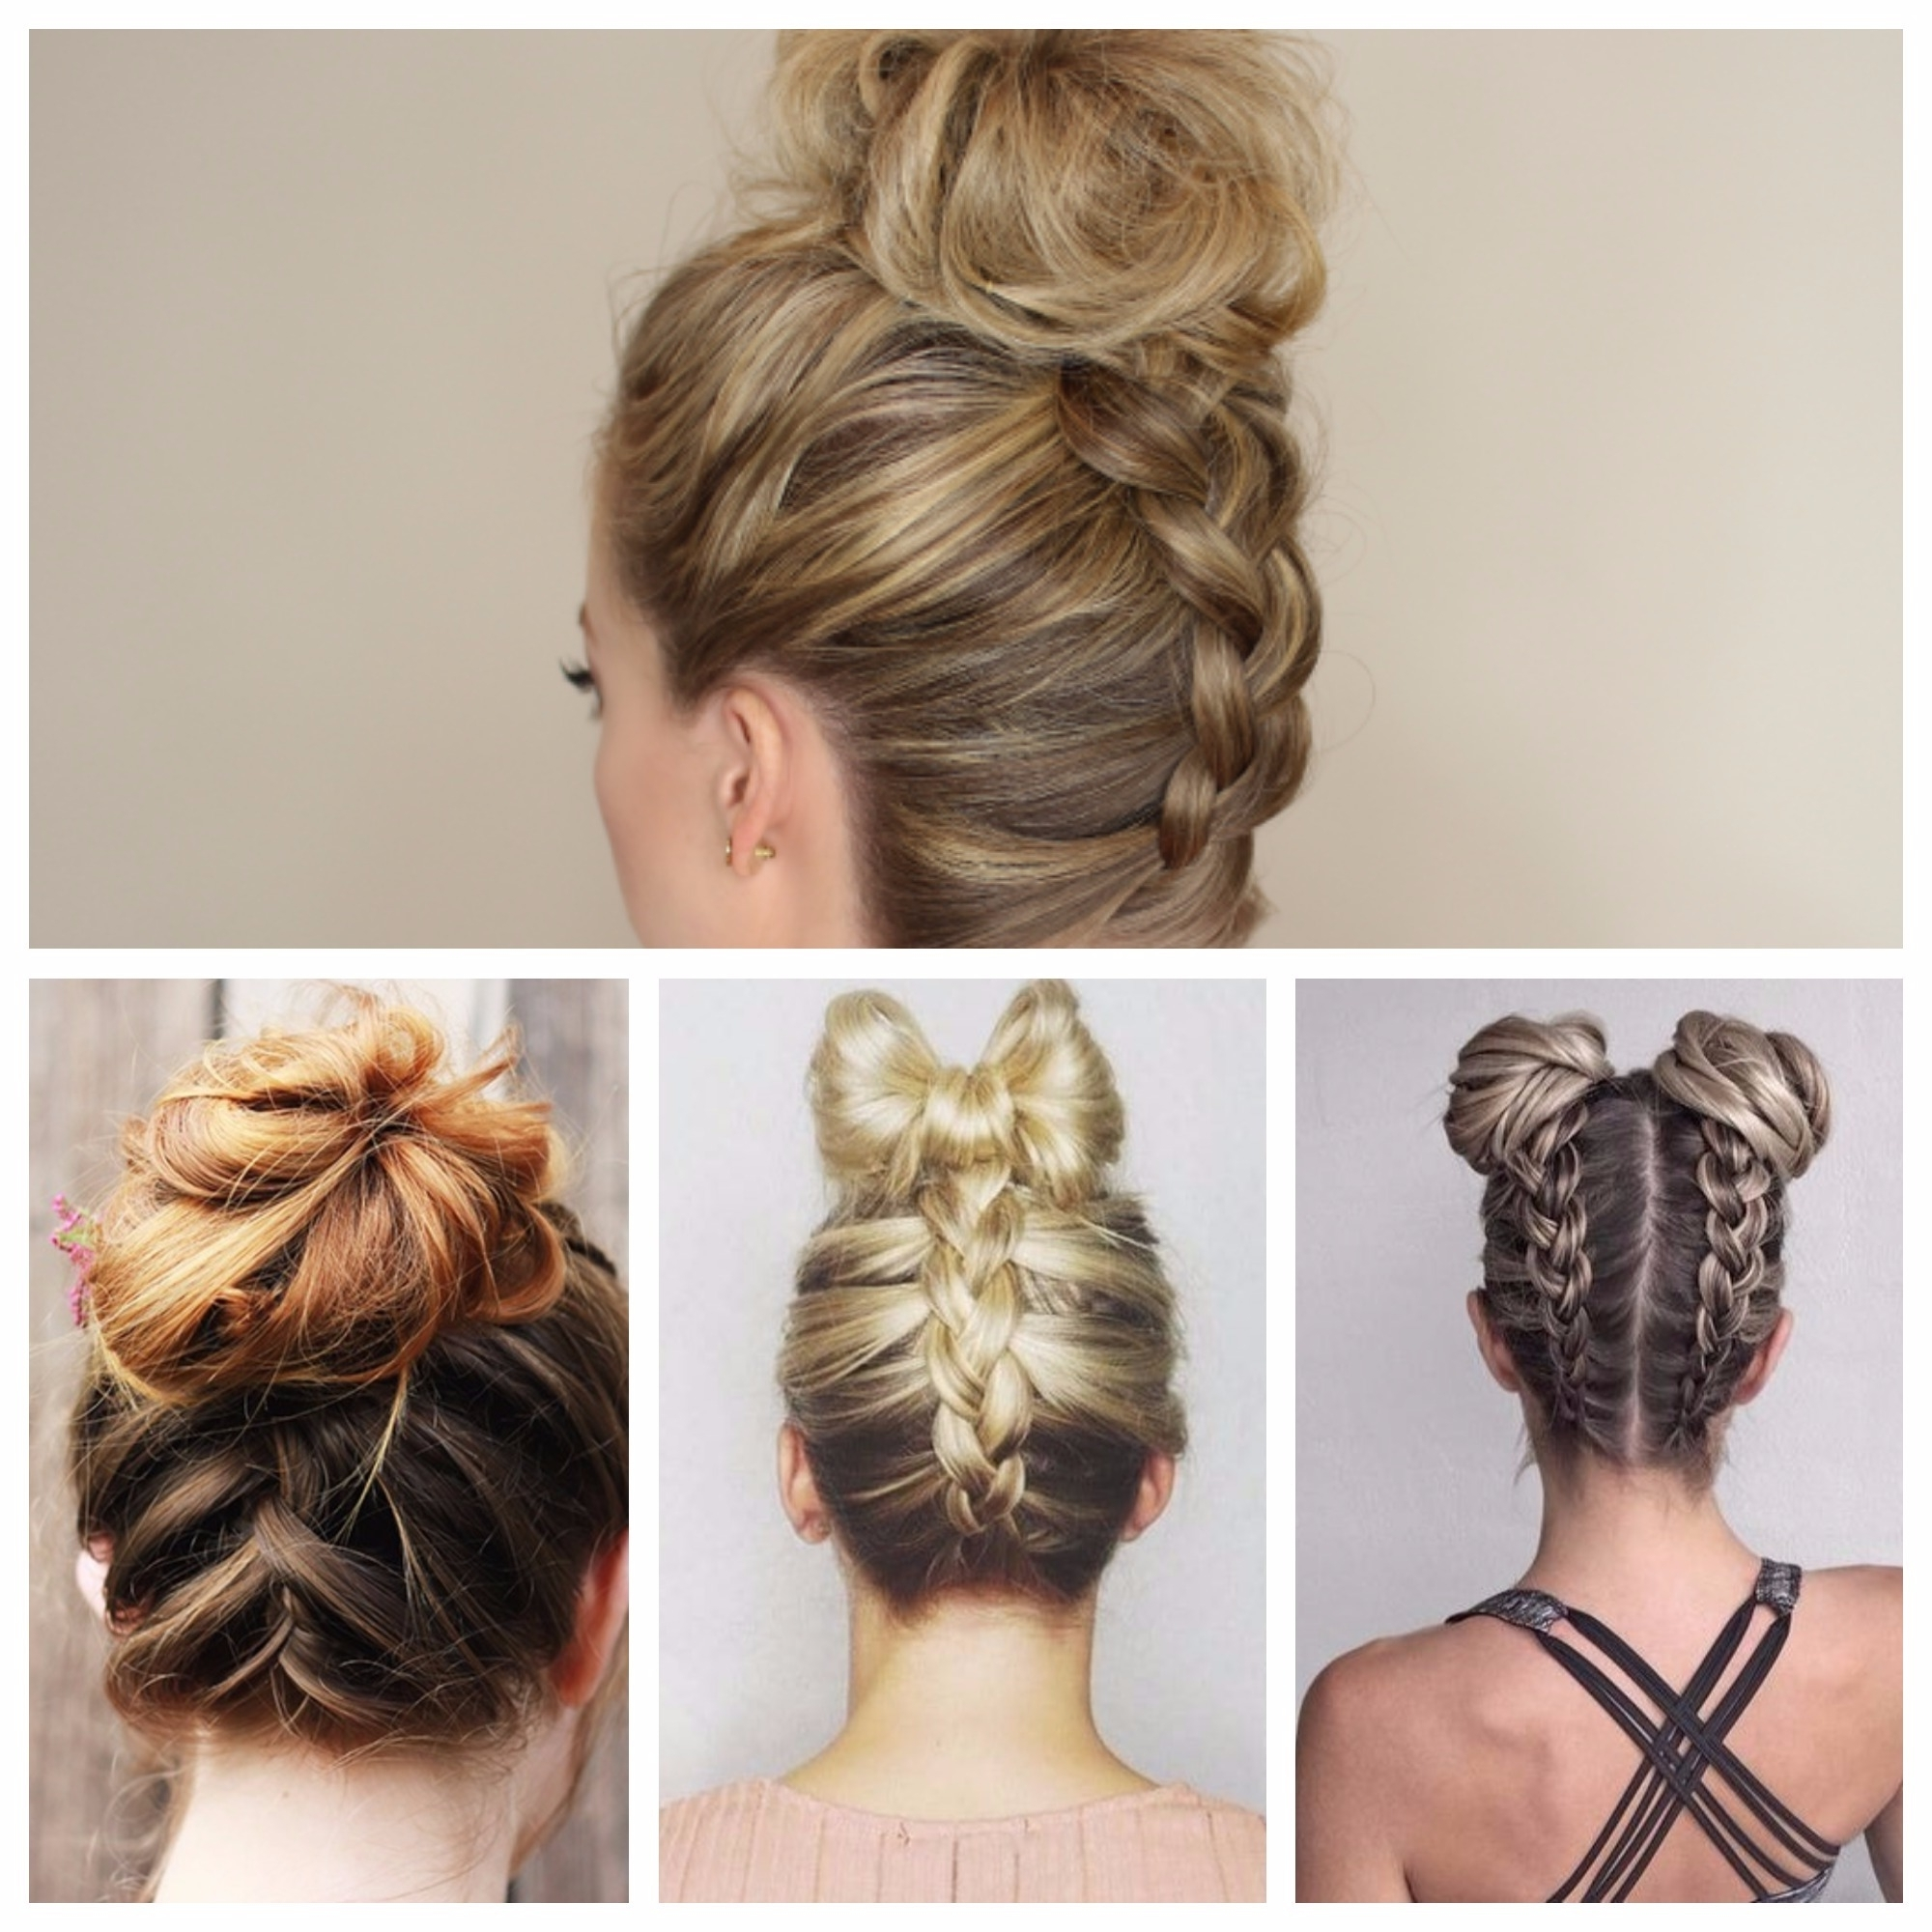 Collection Of Solutions French Braid With Bun Hairstyles Lovely Intended For Famous French Braid Crown And Bun Updo (View 6 of 15)